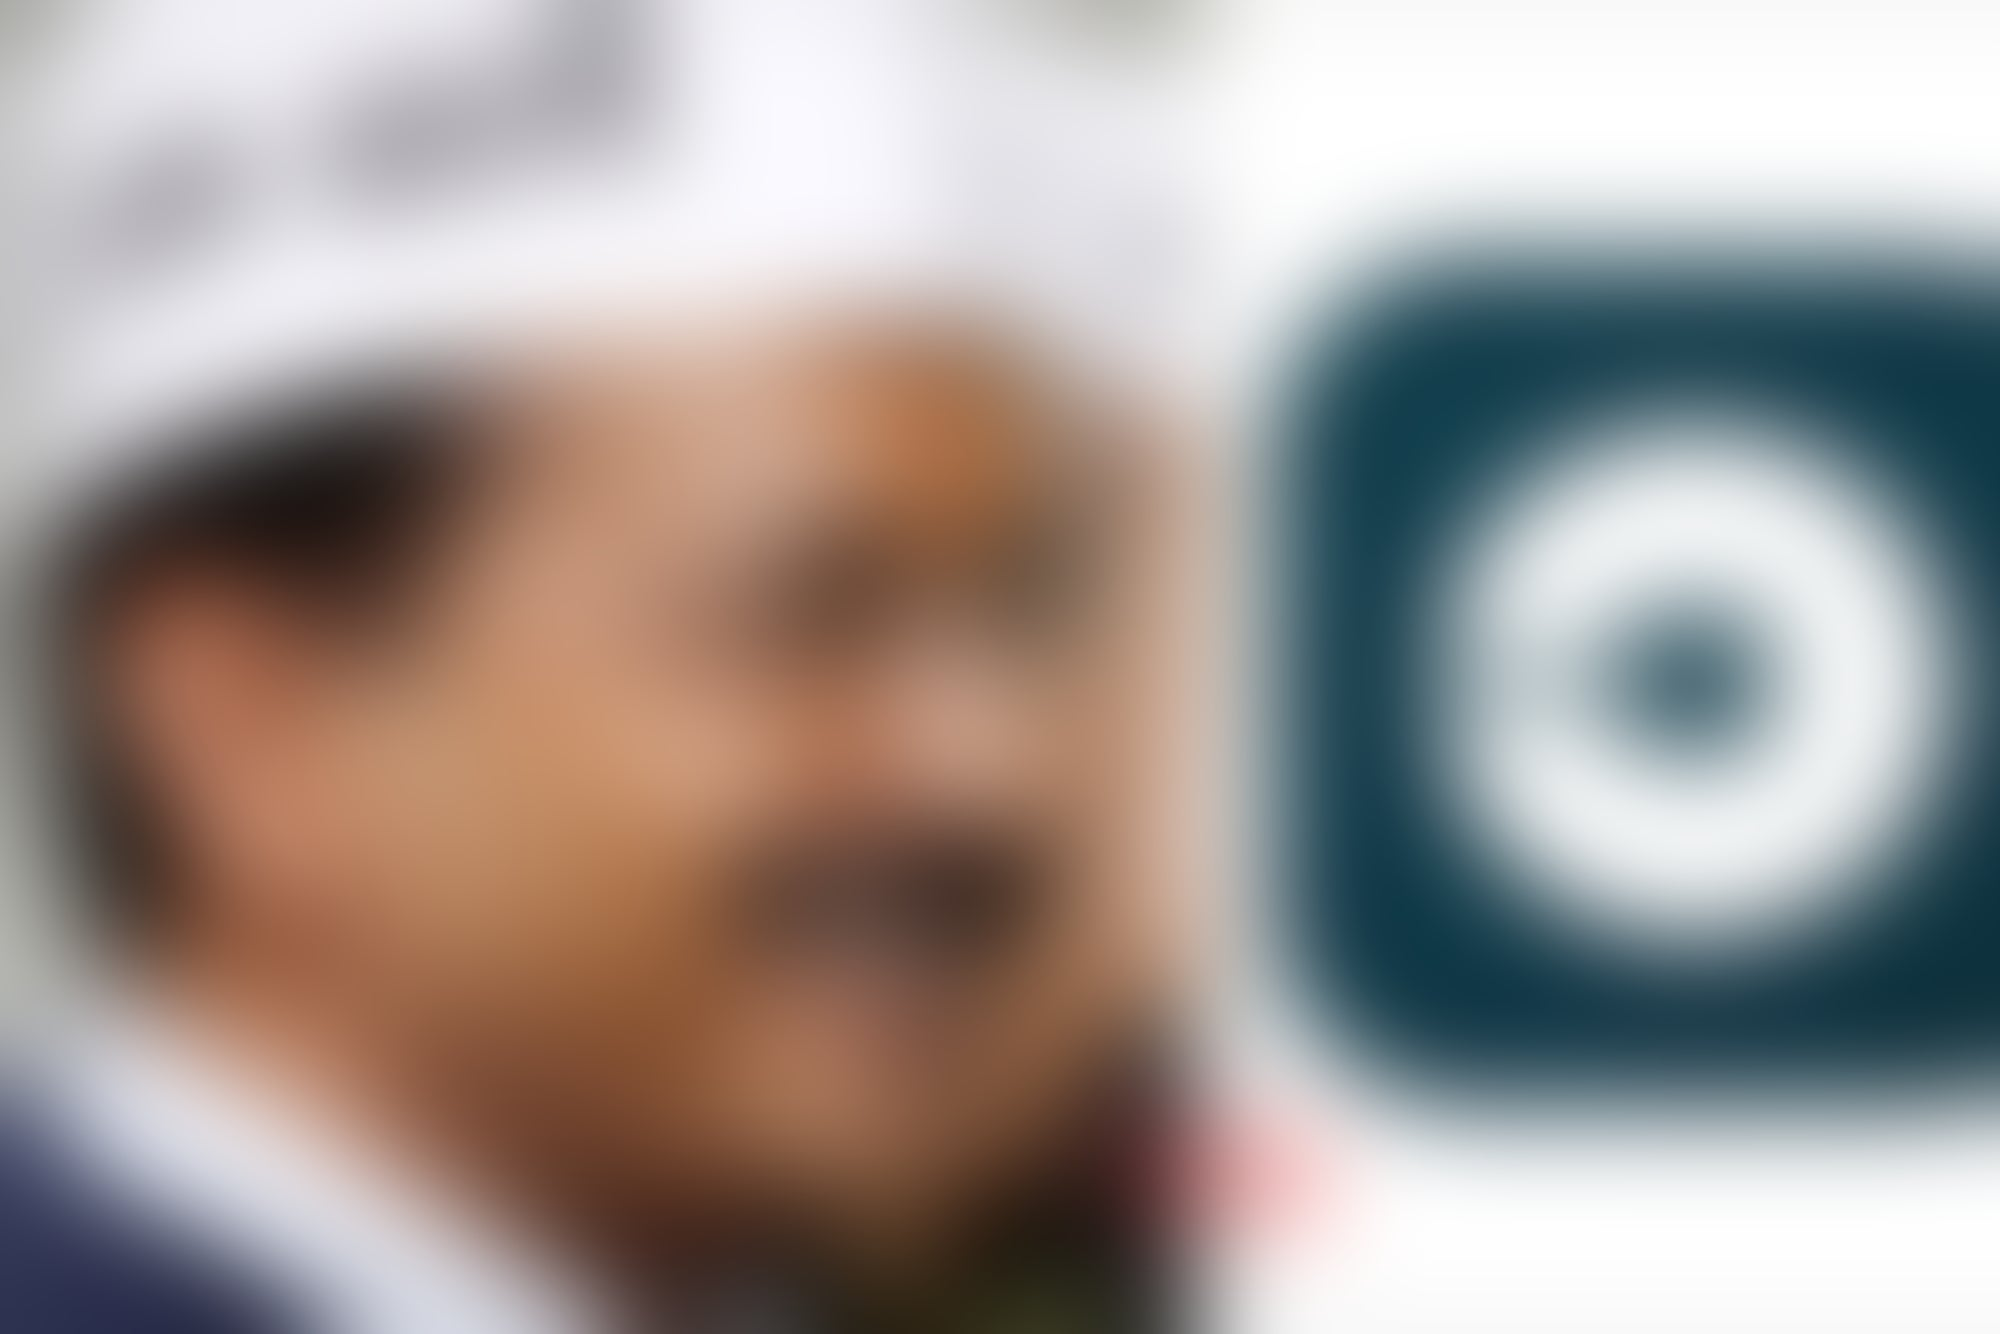 Is Arvind Kejriwal Correct About Uber's Surge Being 'Daylight Robbery'?